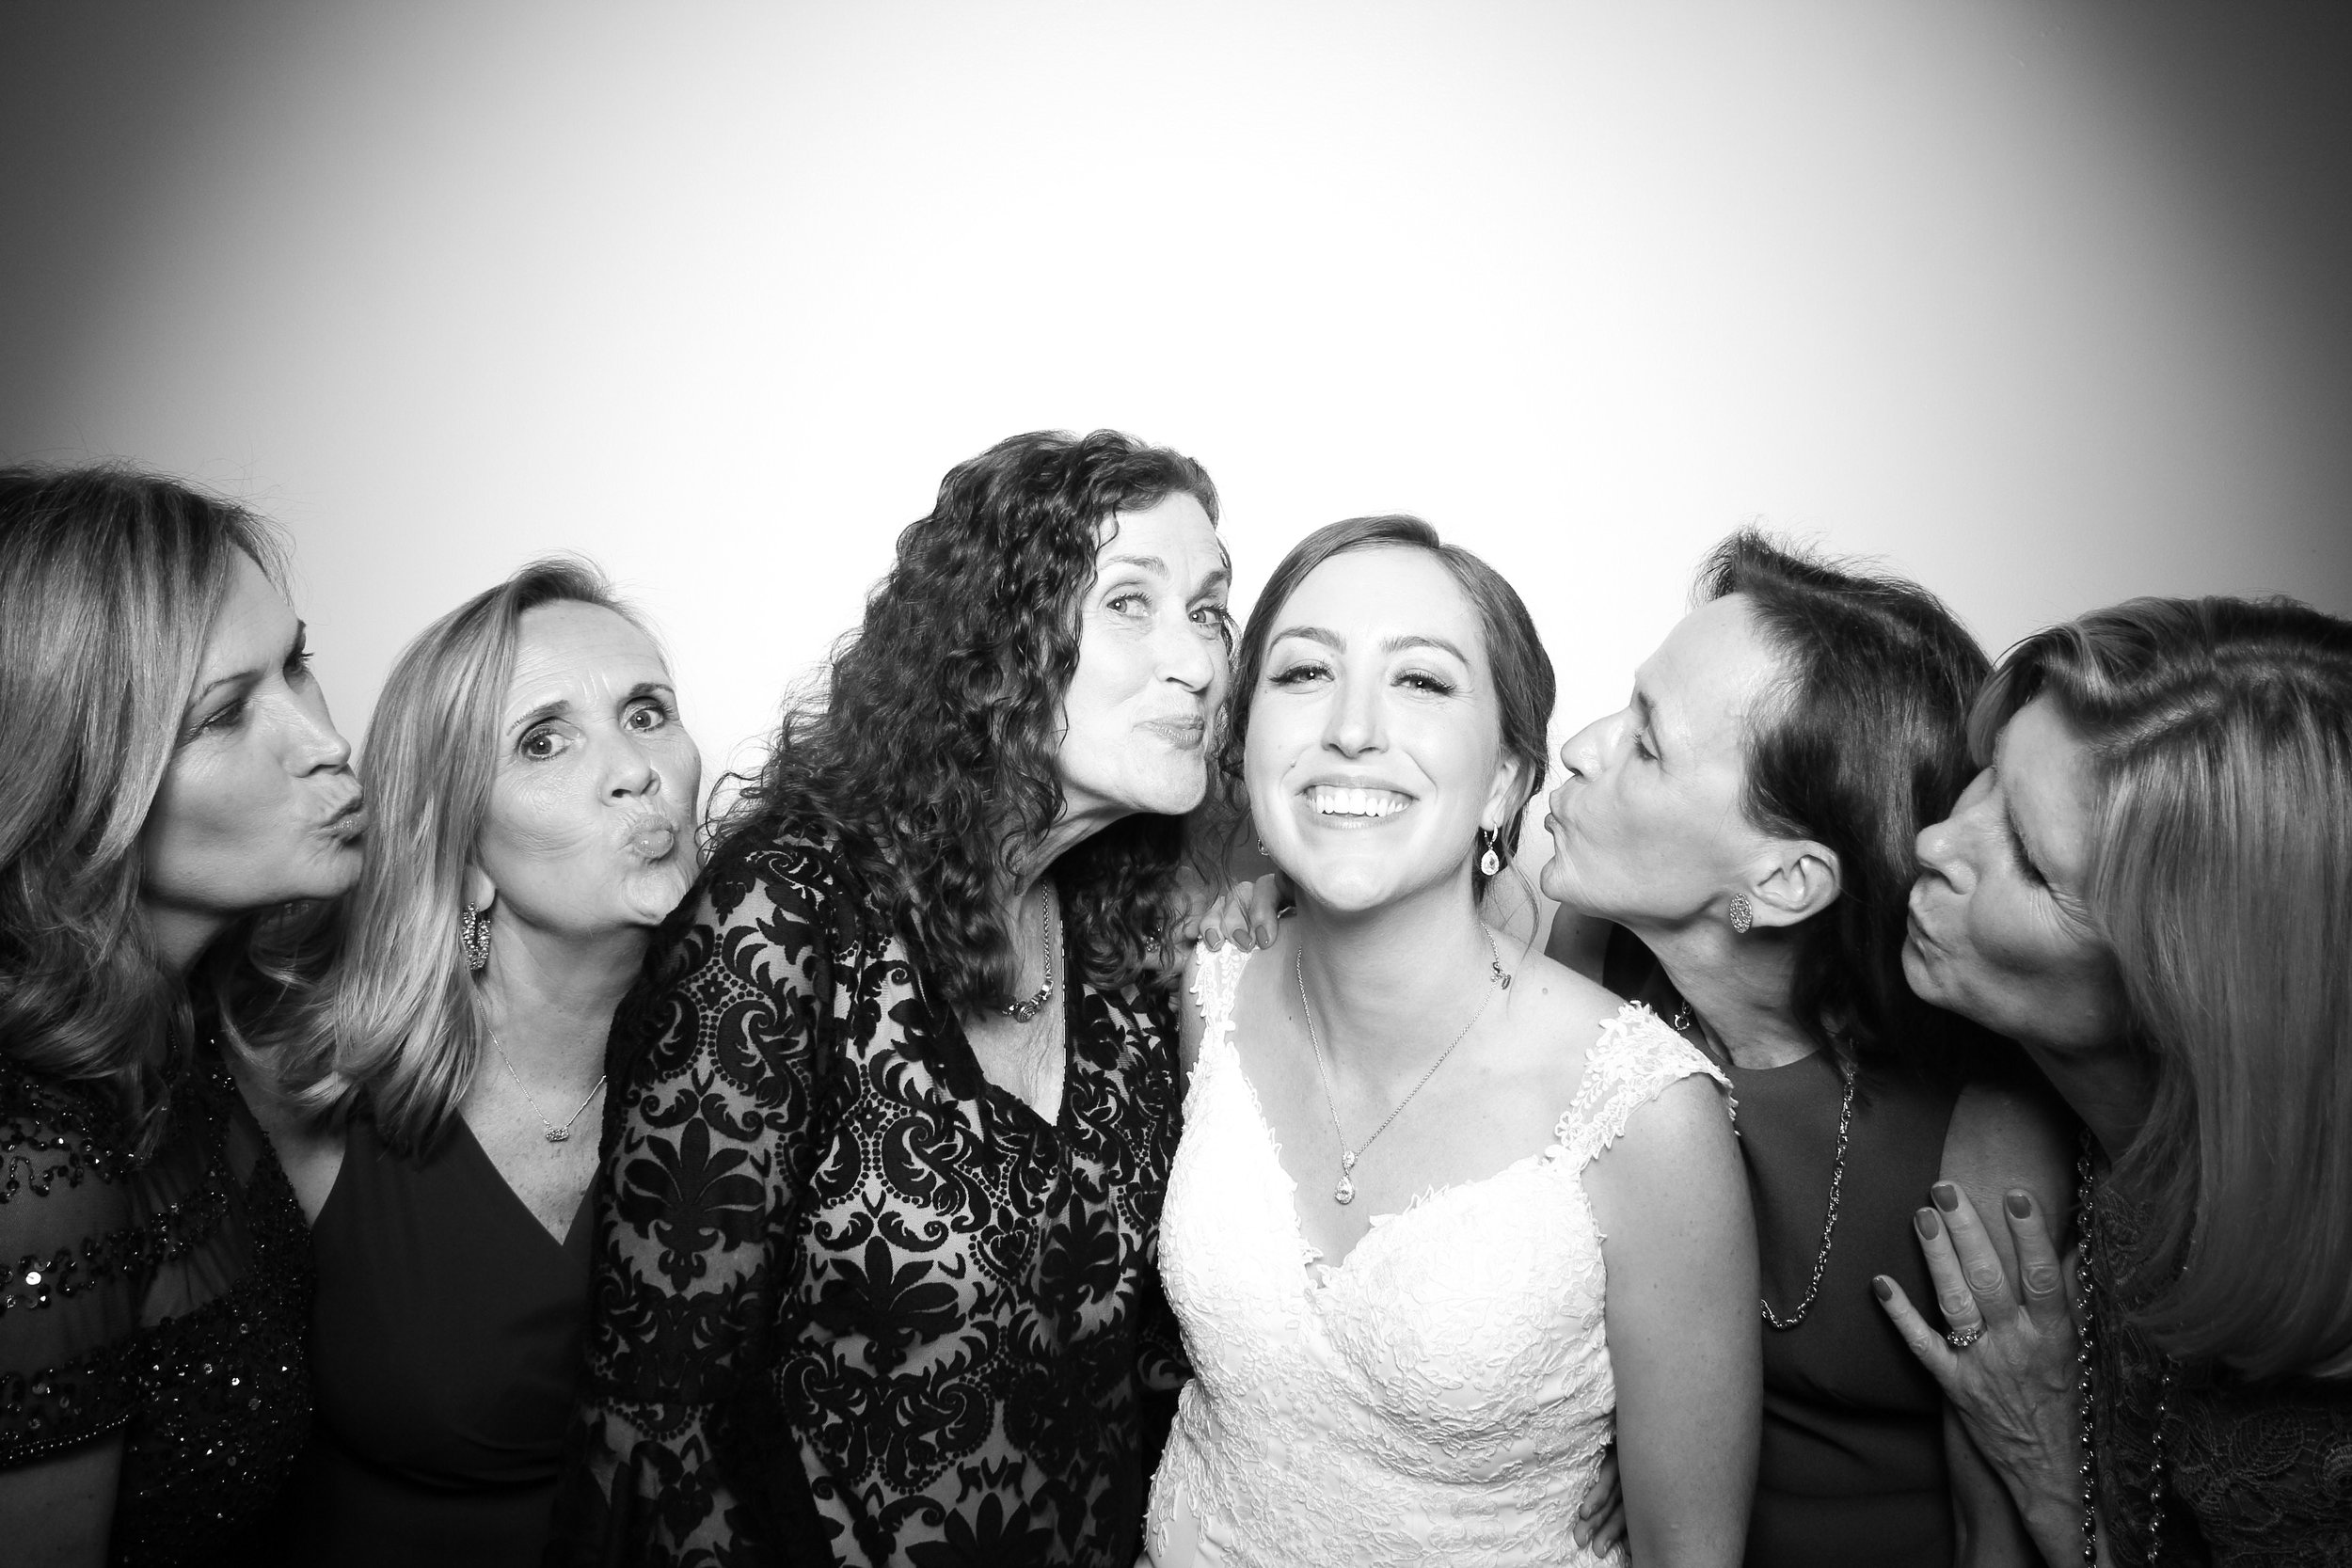 Chicago_Vintage_Wedding_Photobooth_Ravenswood_17.jpg